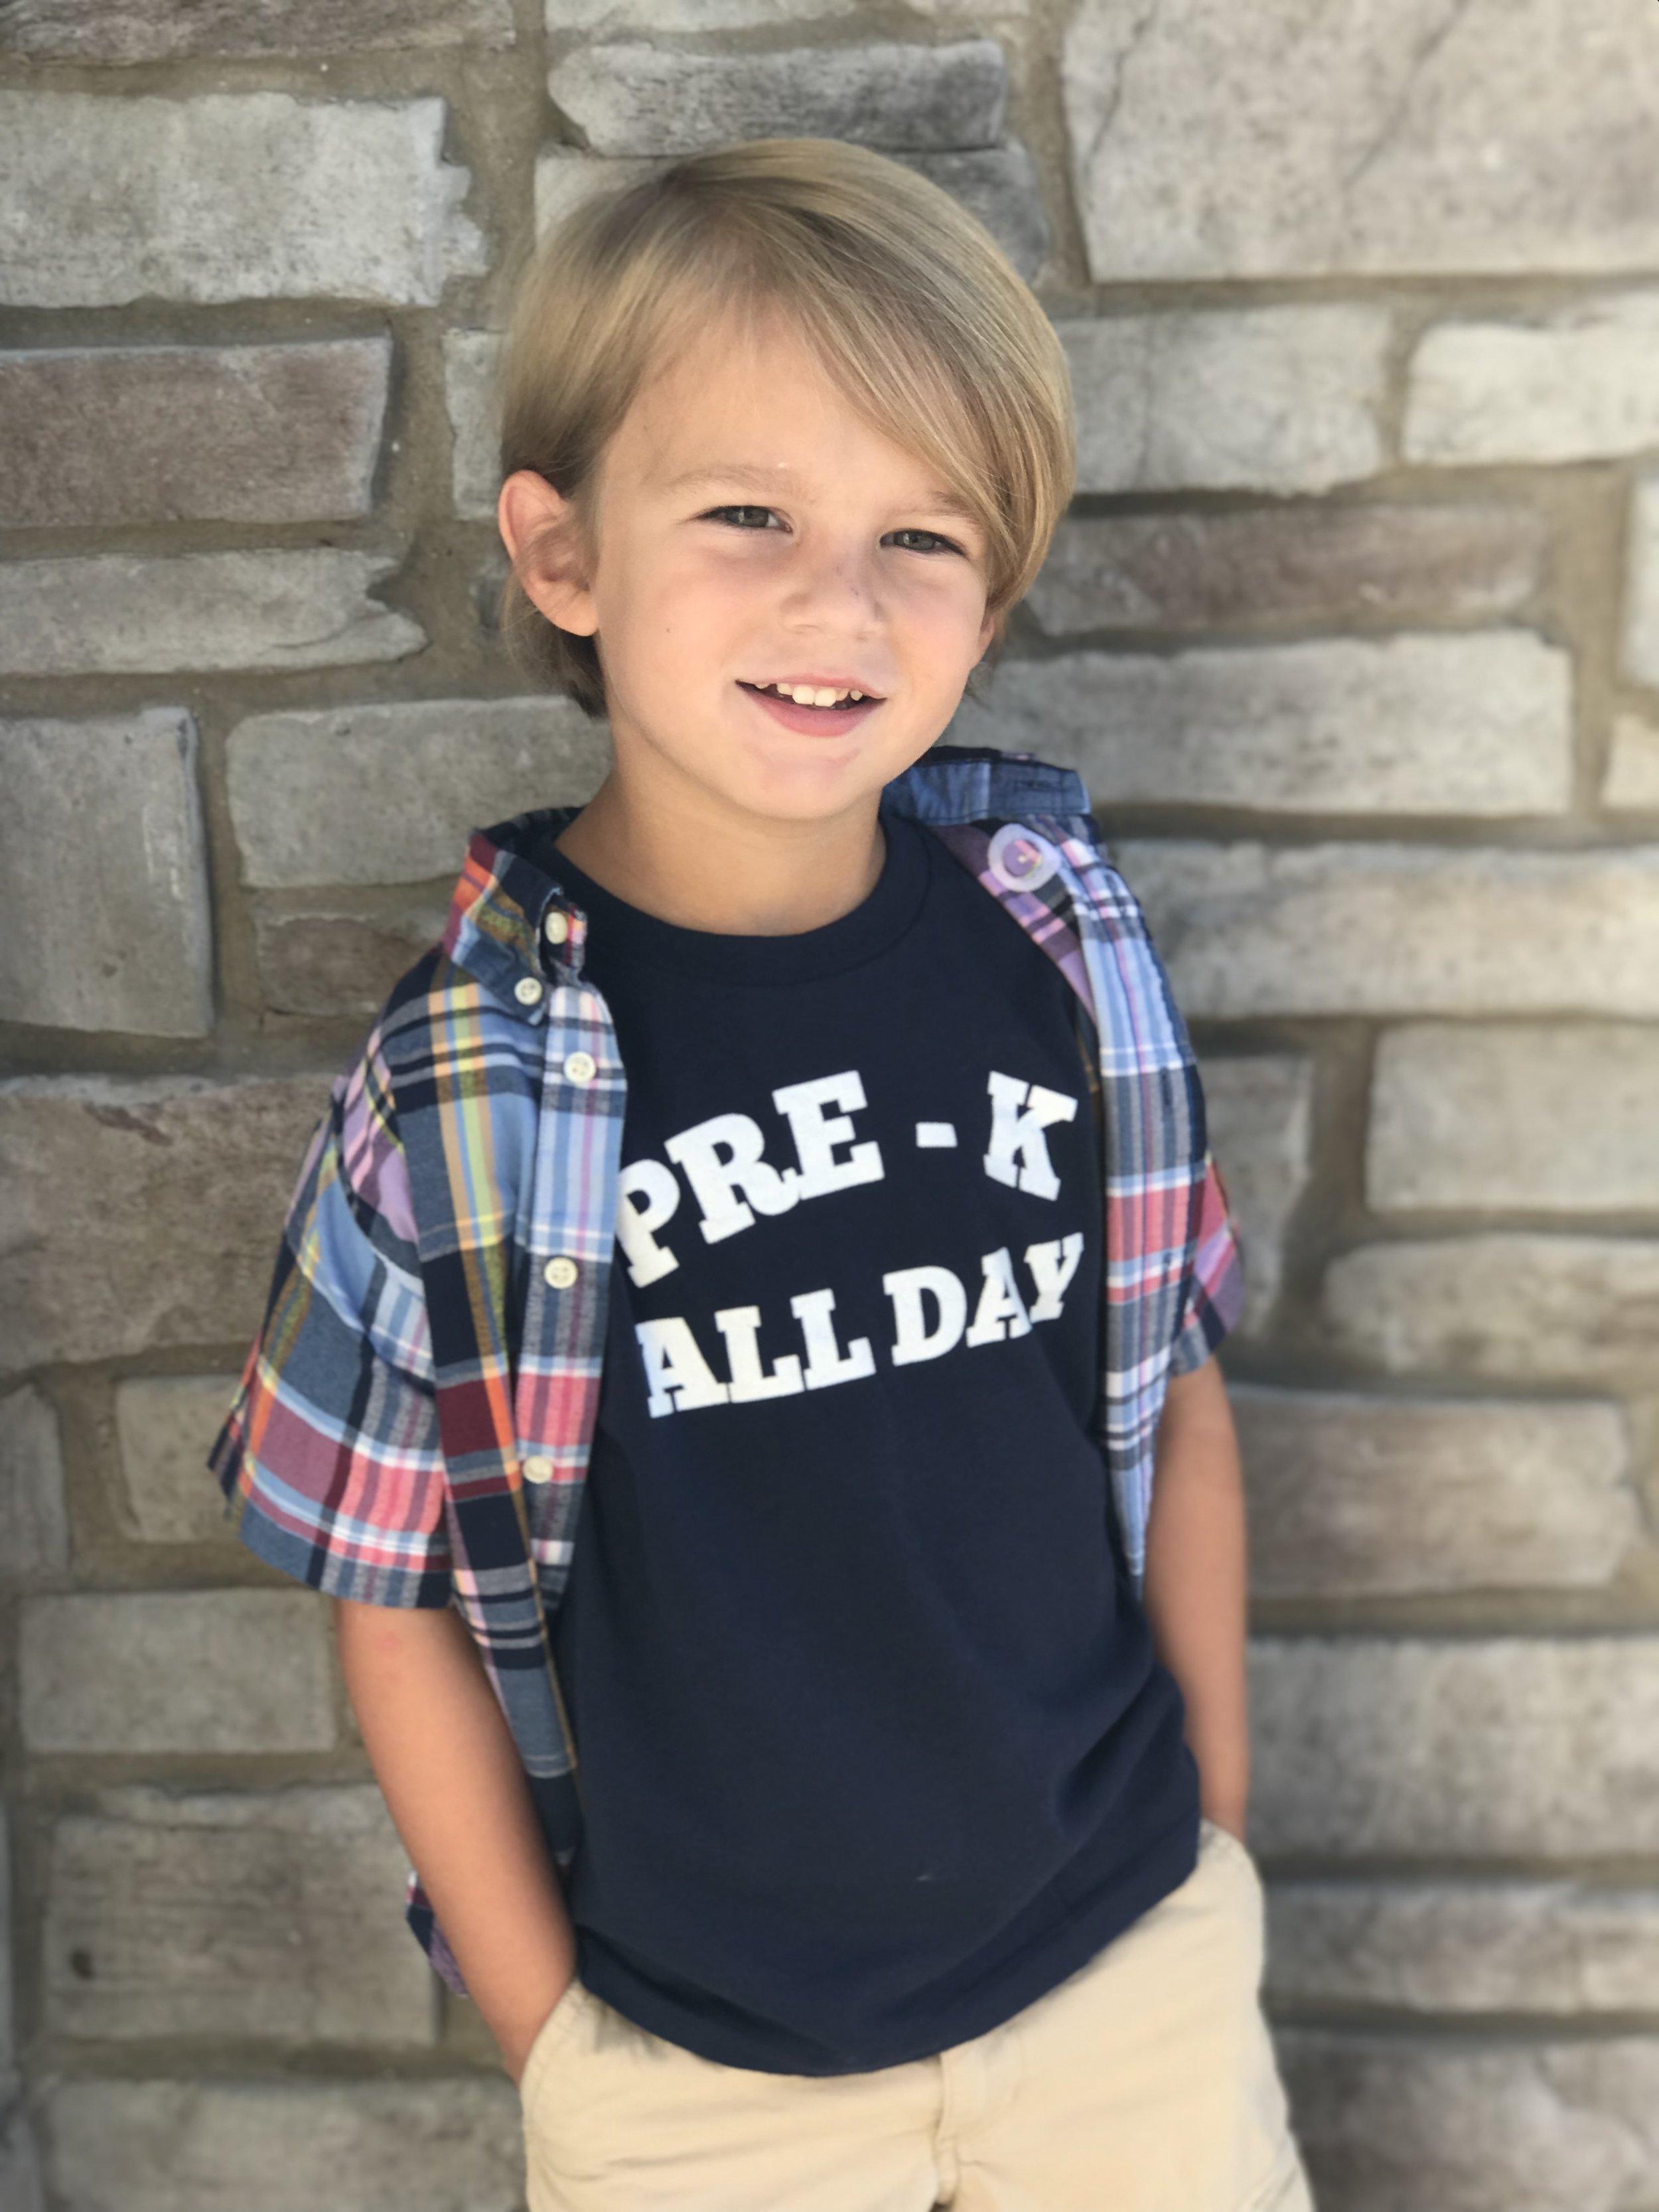 PRE-K ALL DAY  shirt available in our  Etsy shop.